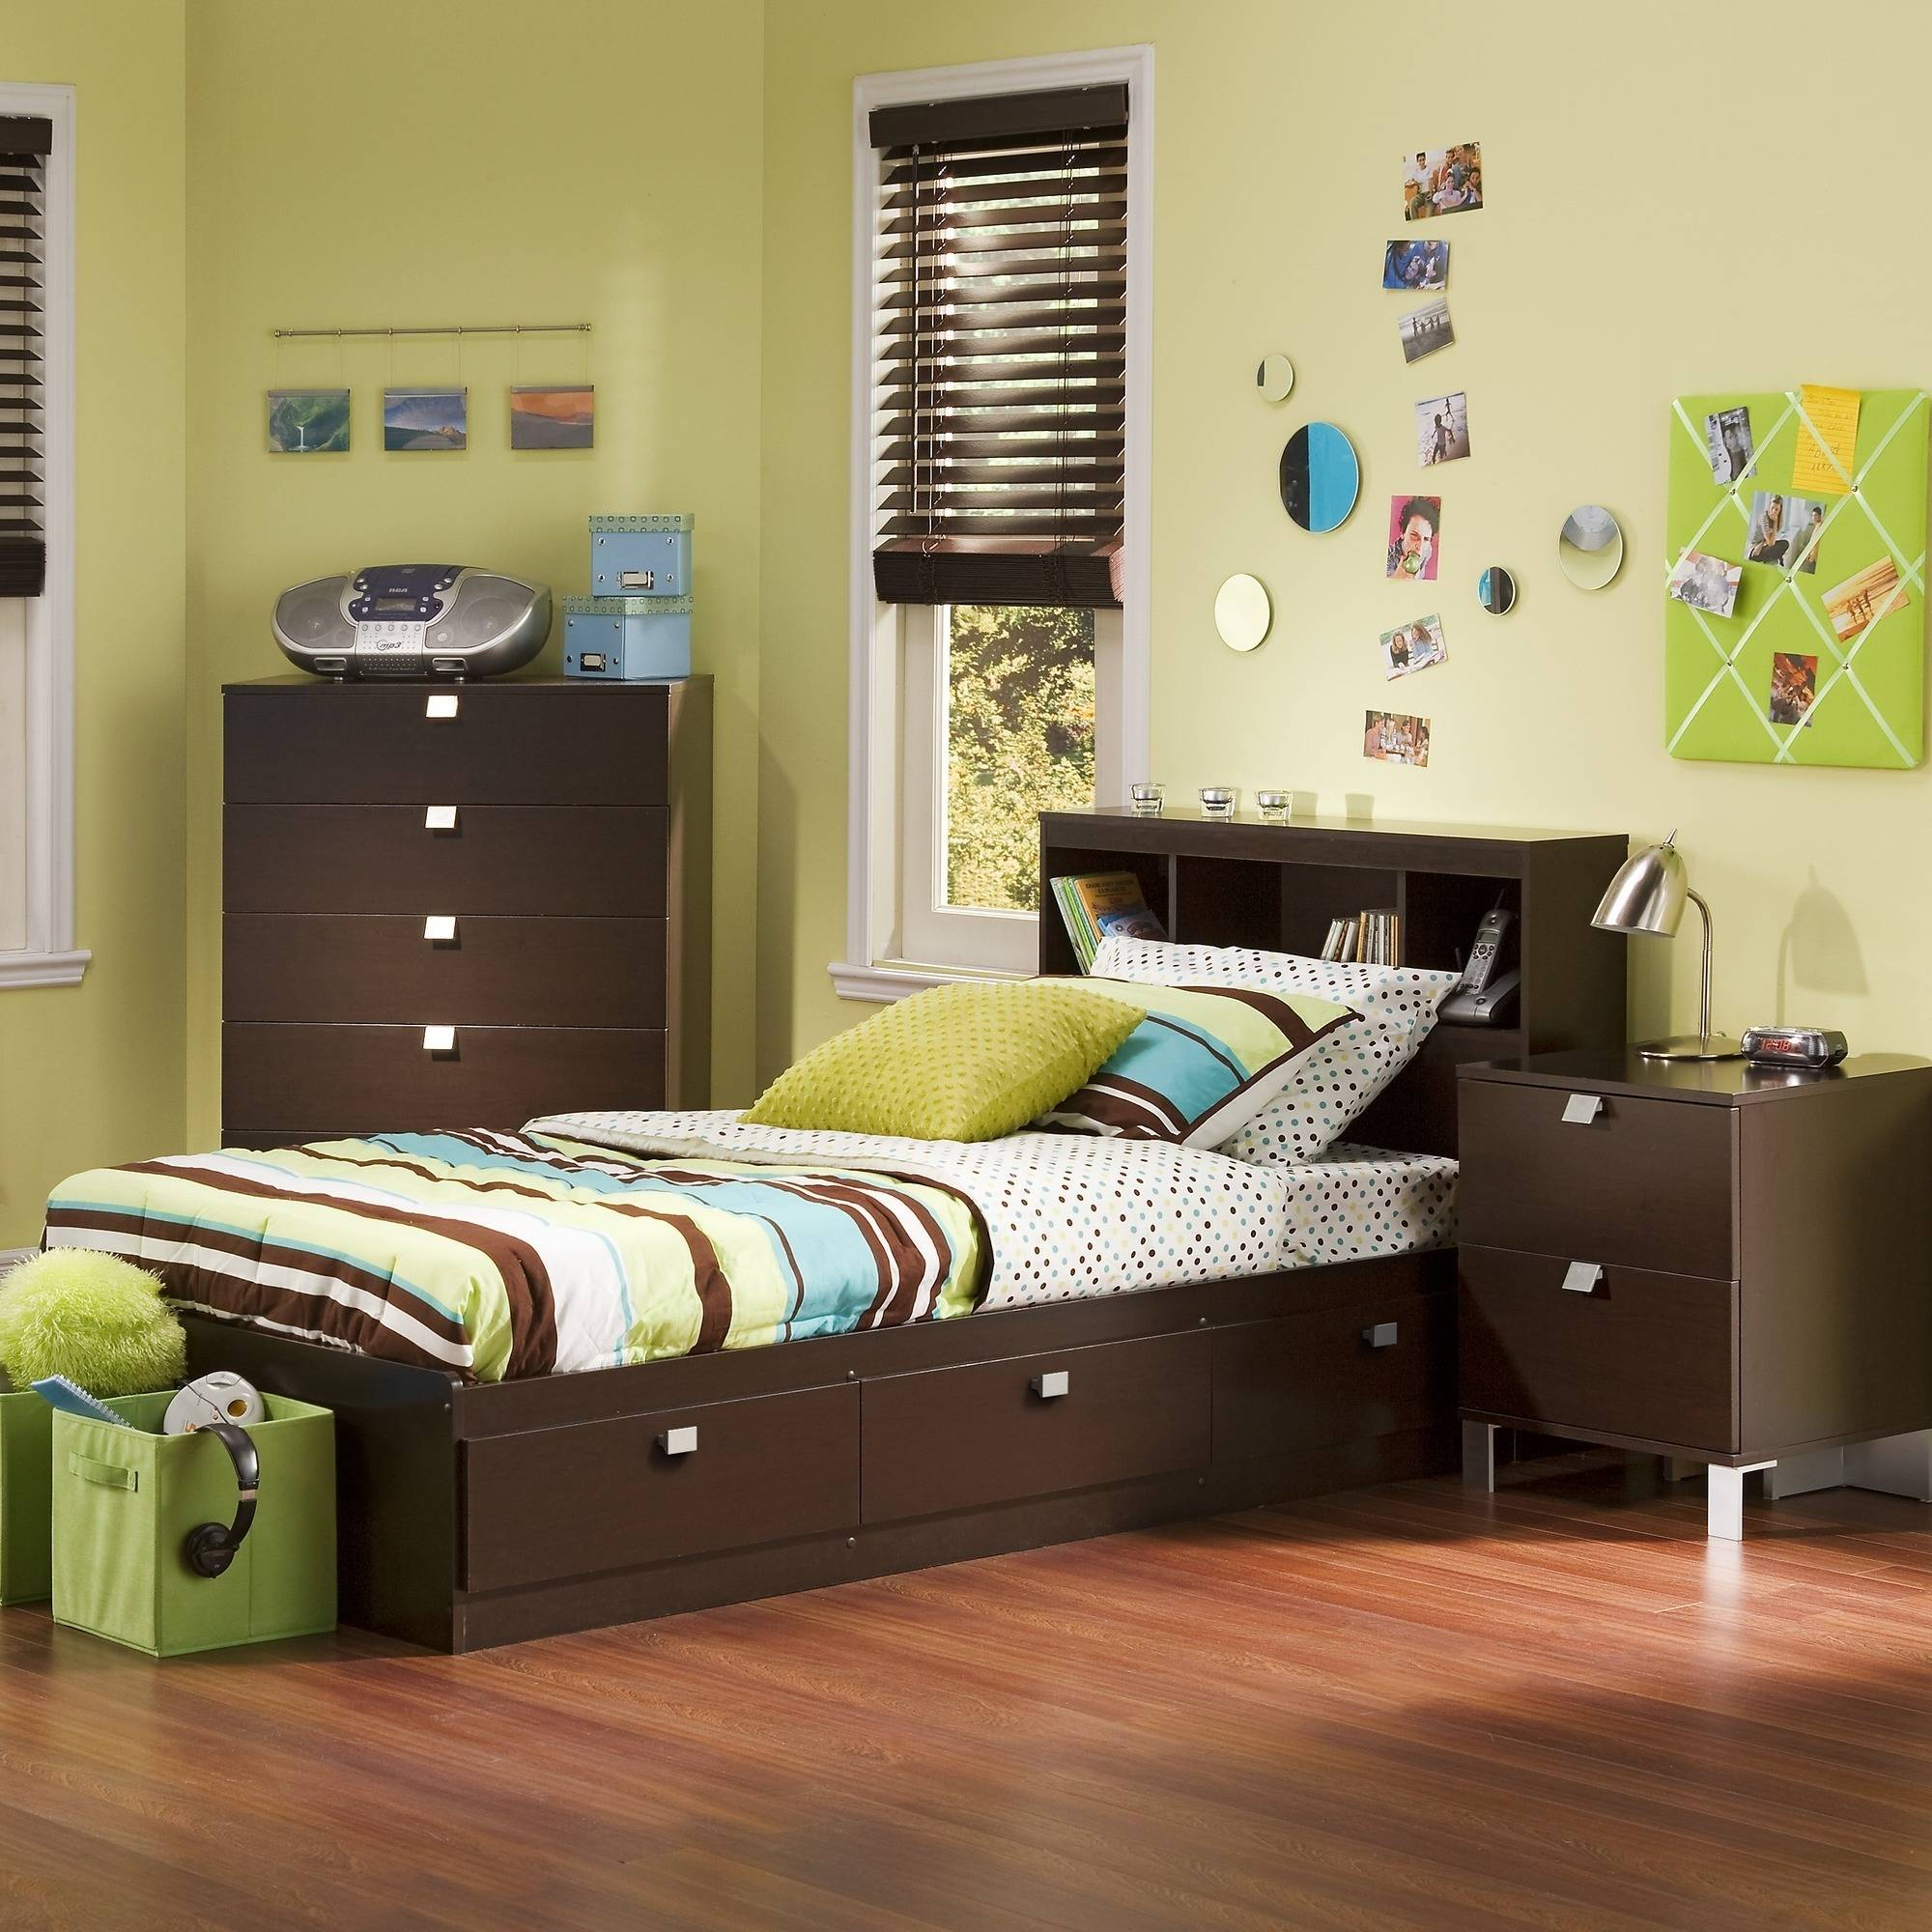 South Shore Spark 3-Piece Kids Bedroom Set, Twin, Chocolate by South Shore